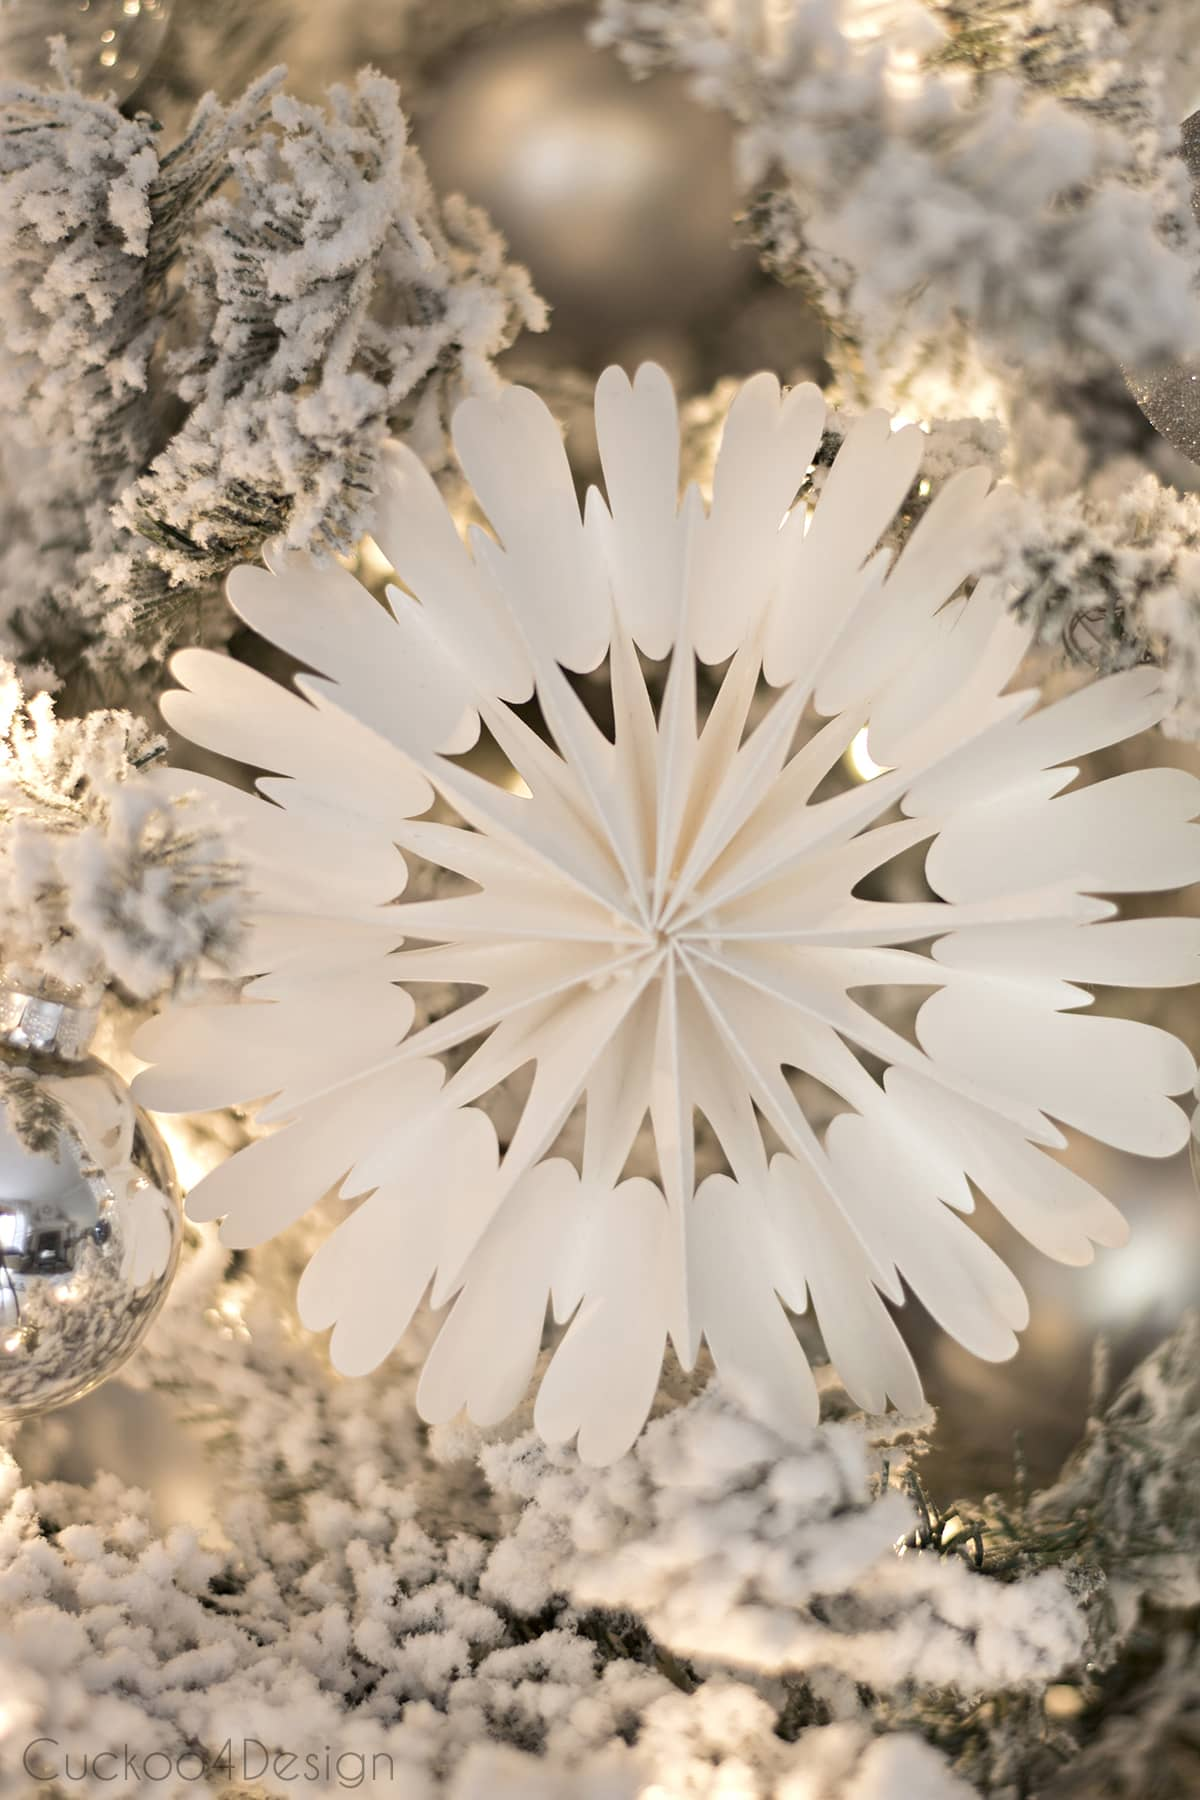 Poster Board Snowflakes for Christmas Tree Decor